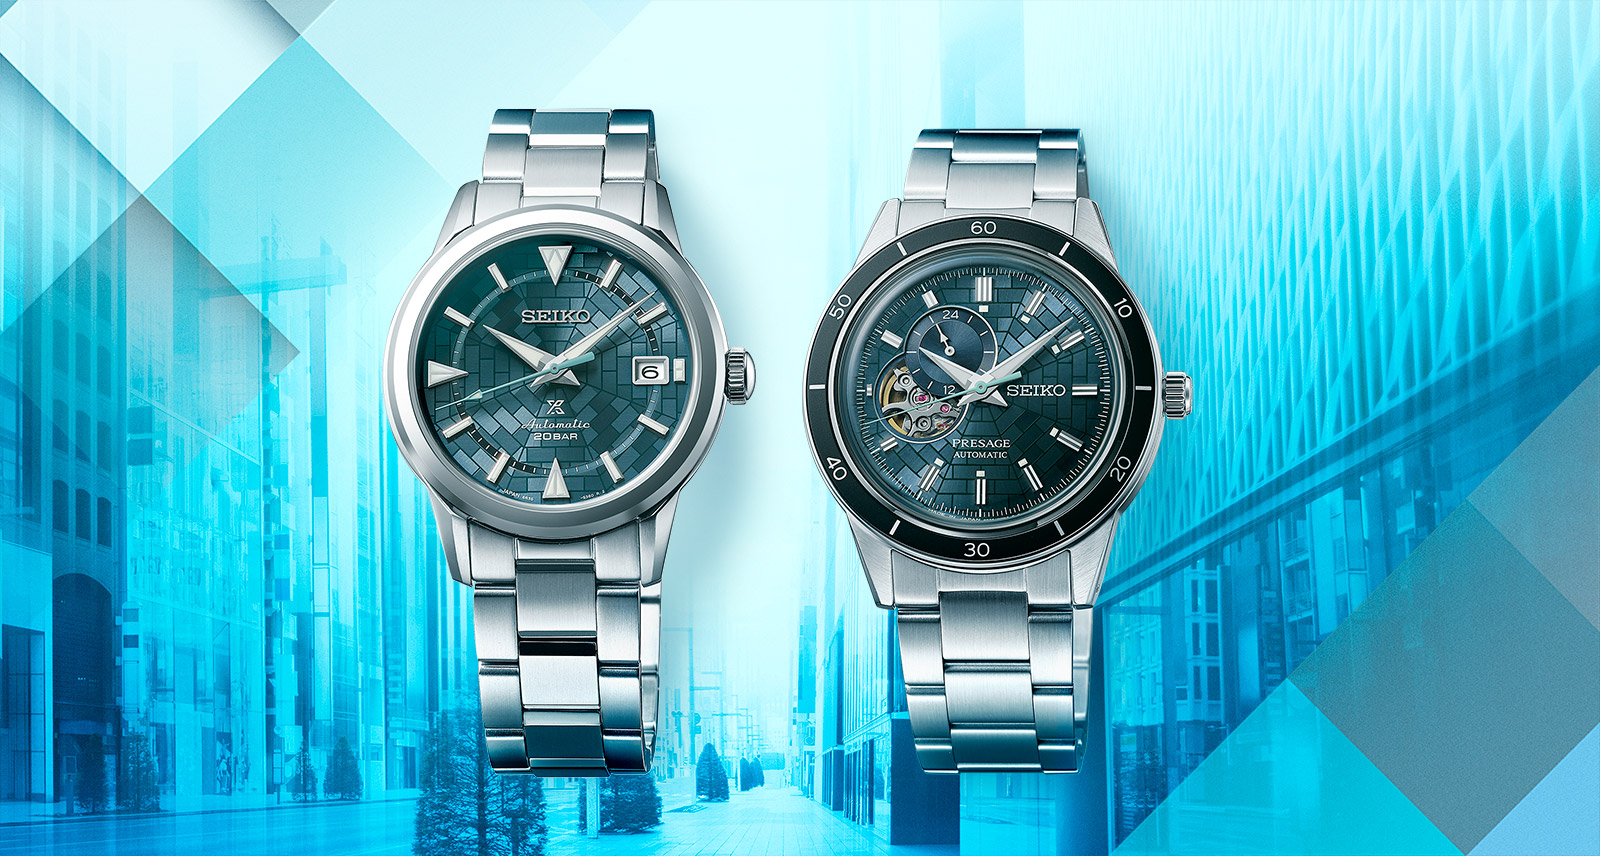 Seiko's Latest Limited-Edition Watches Are An Homage to Tokyo